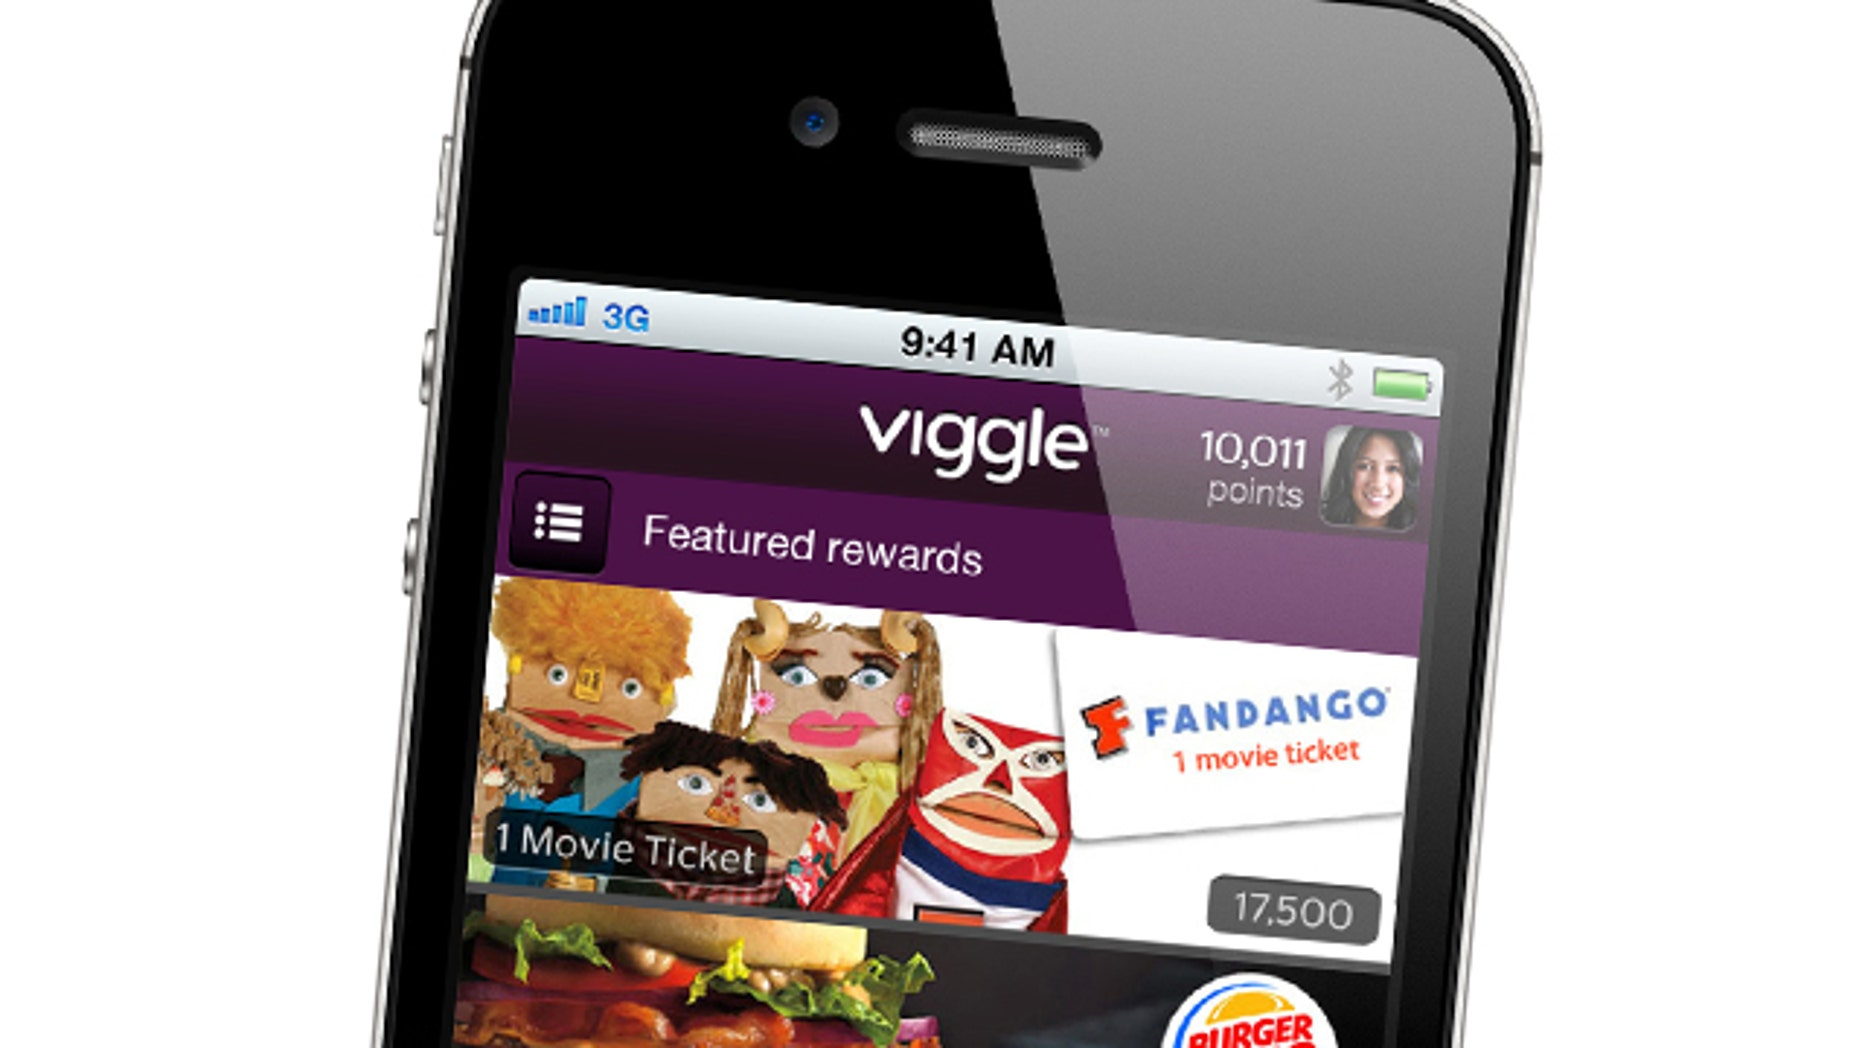 When you tap the screen, Viggle's software for iPhones and iPads listens to what's on, recognizes what you're watching and gives you credit at roughly two points per minute. It even works for shows you've saved on a digital video recorder. Rack up 7,500 points, and you'll be rewarded with a $5 gift card from retailers such as Burger King, Starbucks, Apple's iTunes, Best Buy and CVS, which you can redeem directly from your device.